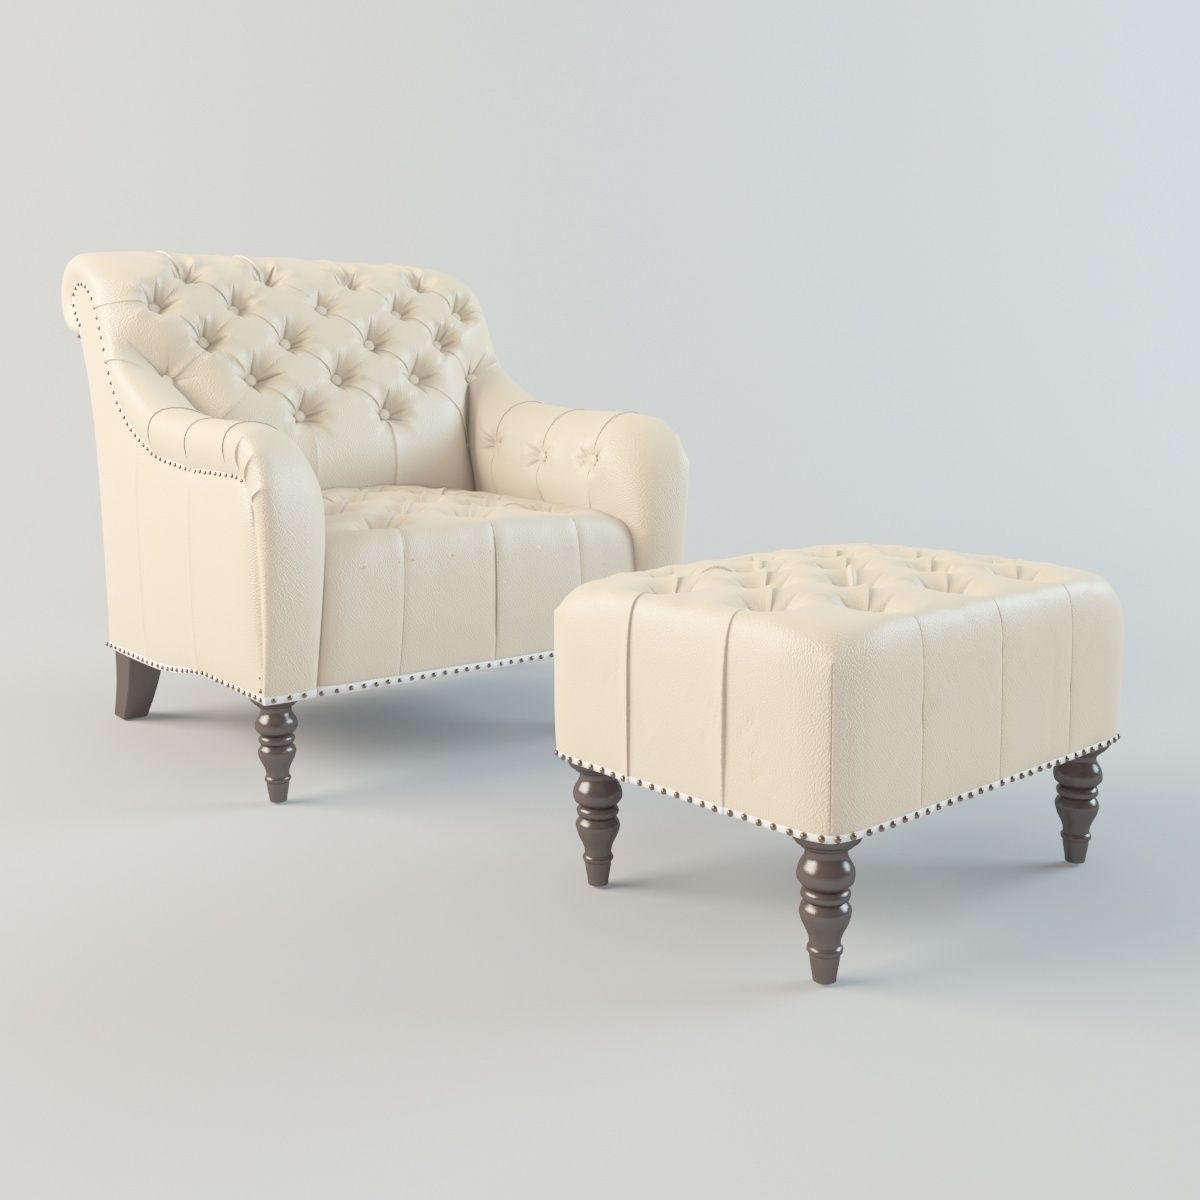 Brady Tufted Leather Chair And Ottoman 3d Model